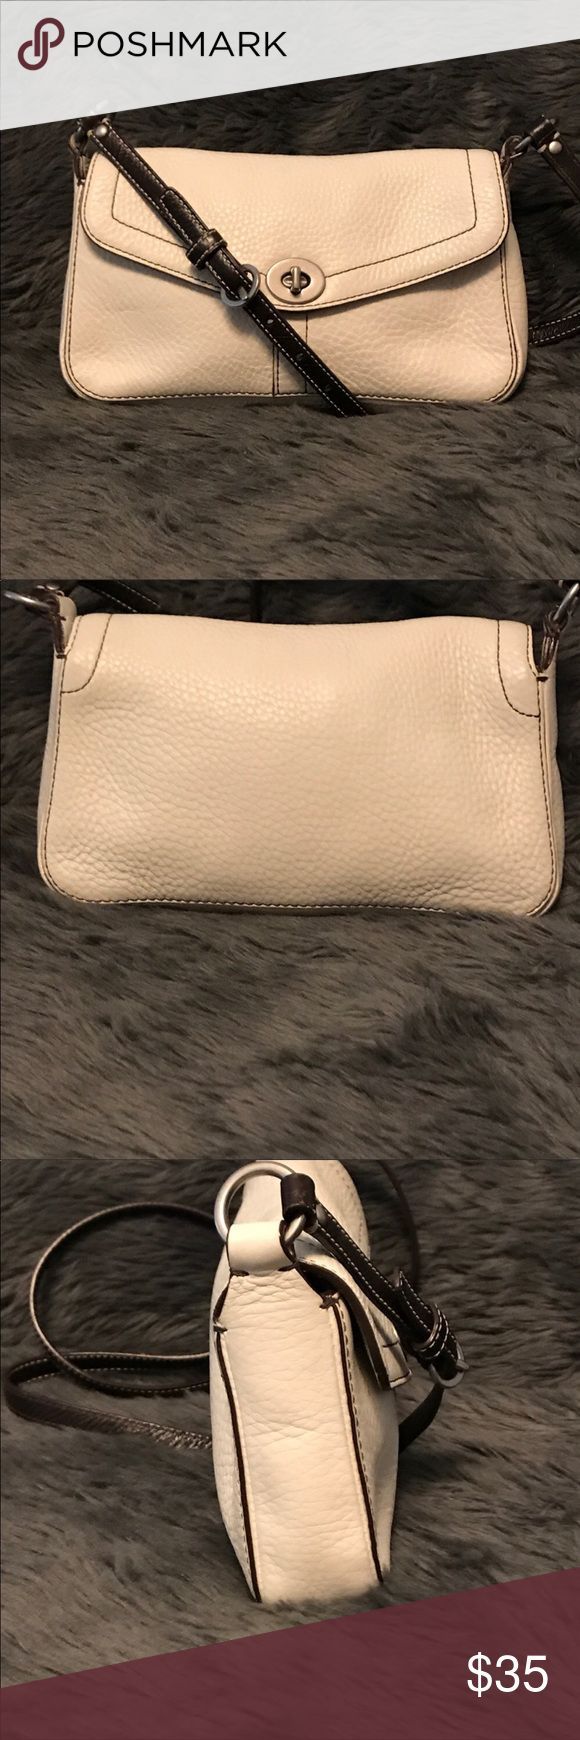 """Coach Pebbled Leather Cross Over Coach Pebbled Leather Cross Over Approximate size 9.5""""L x 2""""W x 5.5""""H and a 21"""" adjustable strap.  Used Gently! Coach Bags Crossbody Bags"""